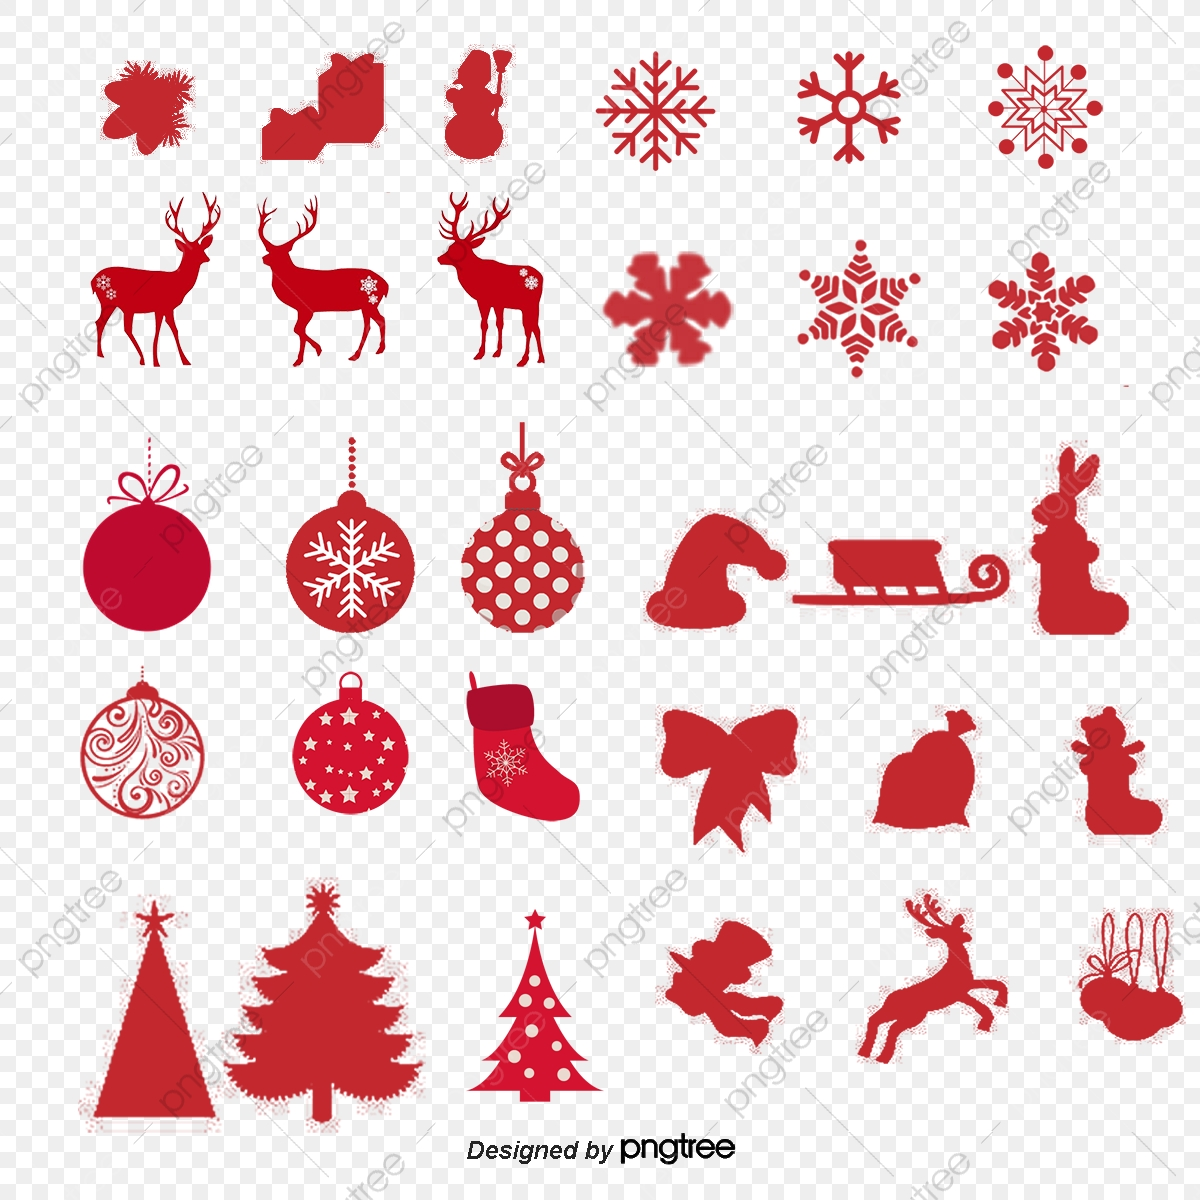 Christmas Silhouette.Christmas Silhouette Collection Deer Red Christmas Tree